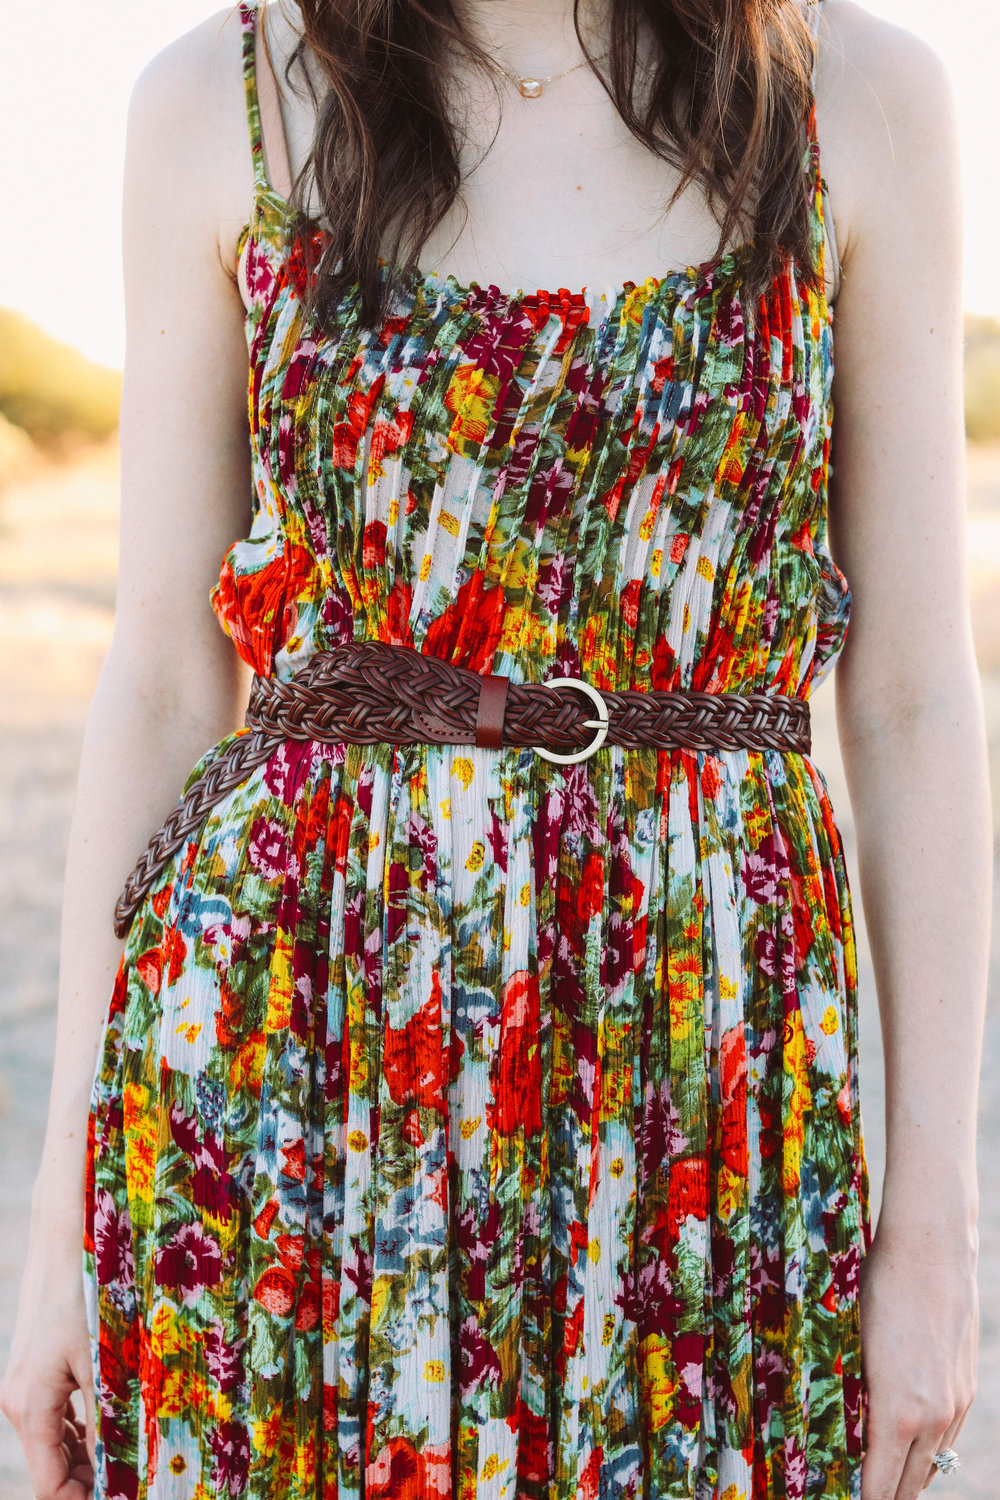 bb-bohemian-florals-007 (1 of 1).jpg